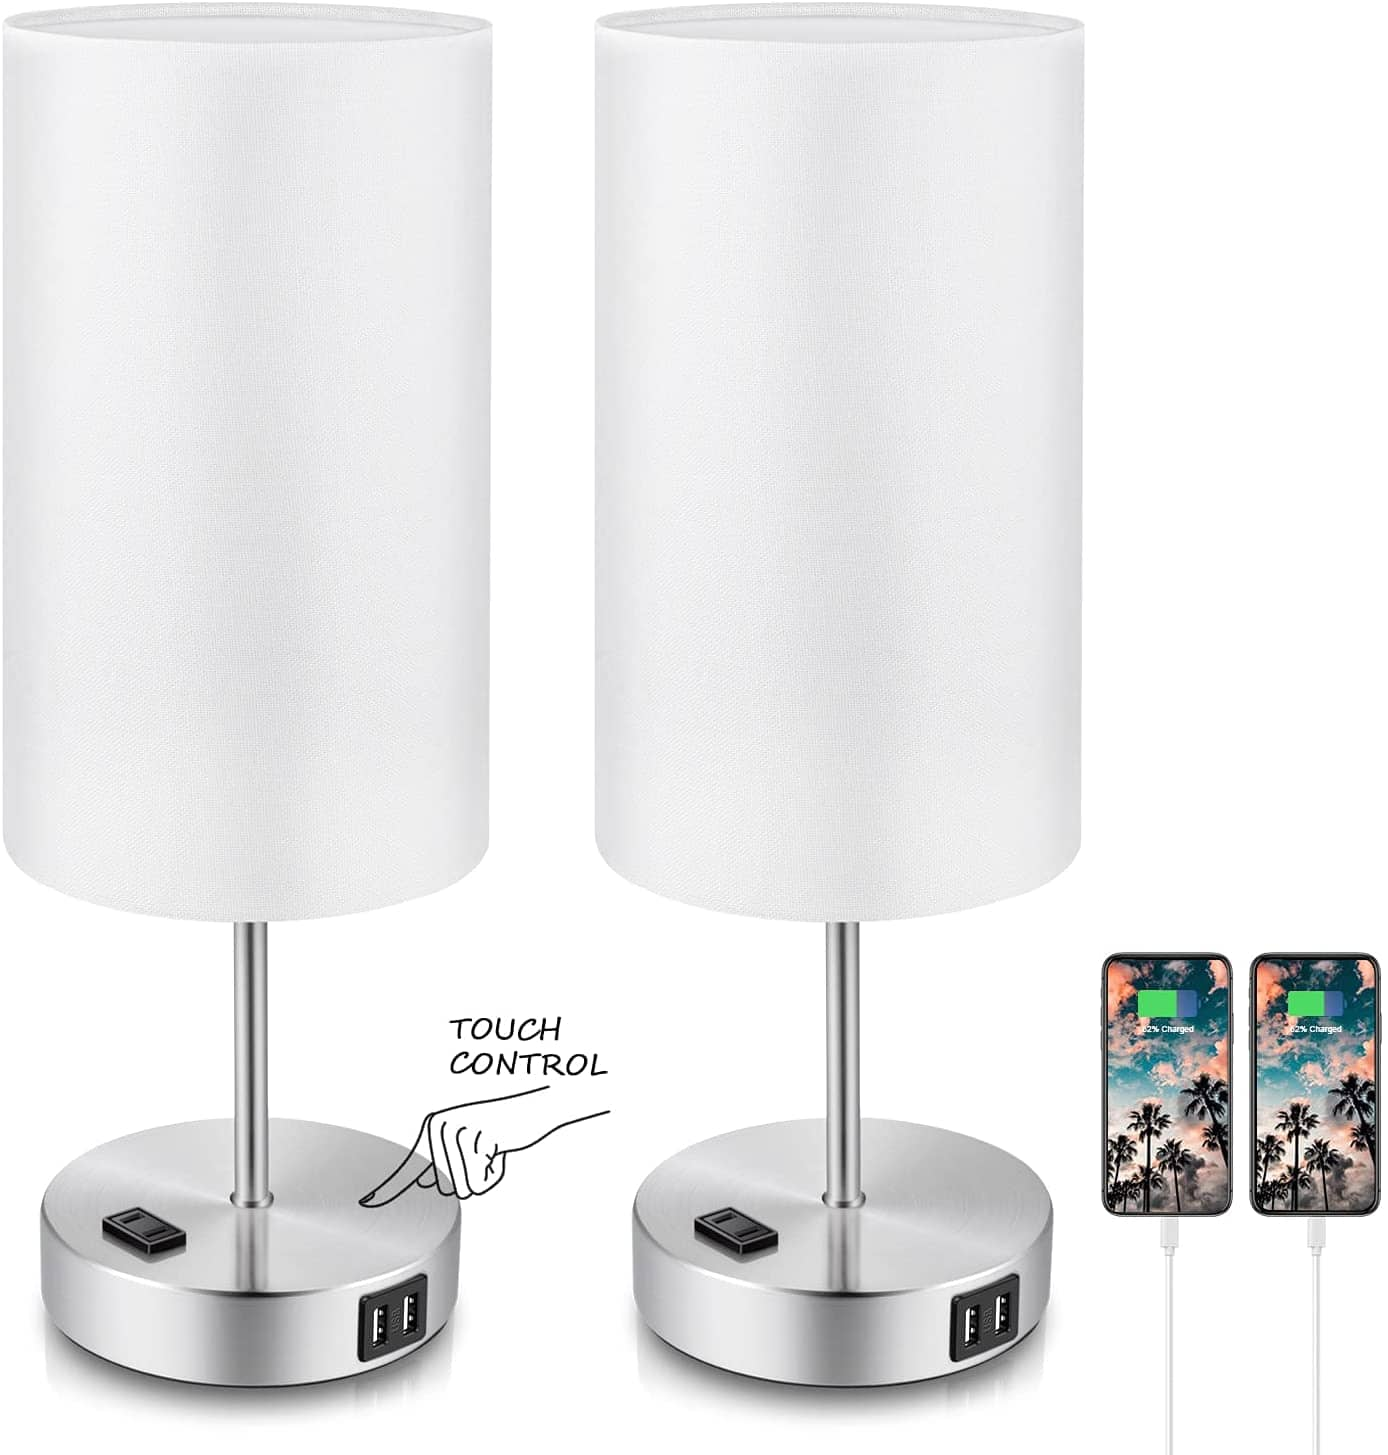 2-Pack TOBUSA 3-Way Dimmable Table Lamps w/ 2 USB Ports and Fabric Shade $33 + free s/h at Amazon